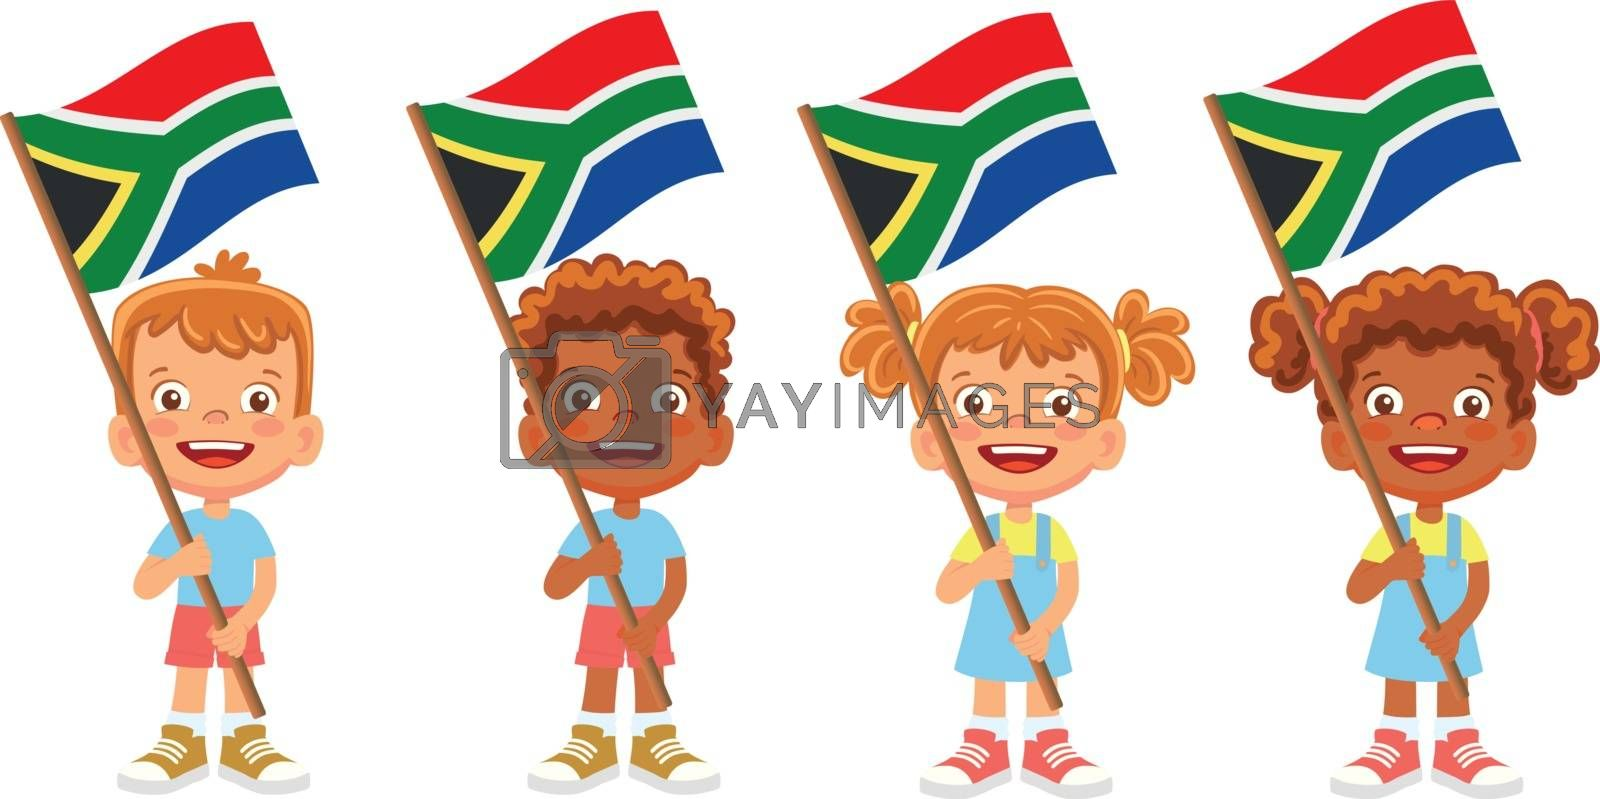 South Africa flag in hand. Children holding flag. National flag of South Africa vector